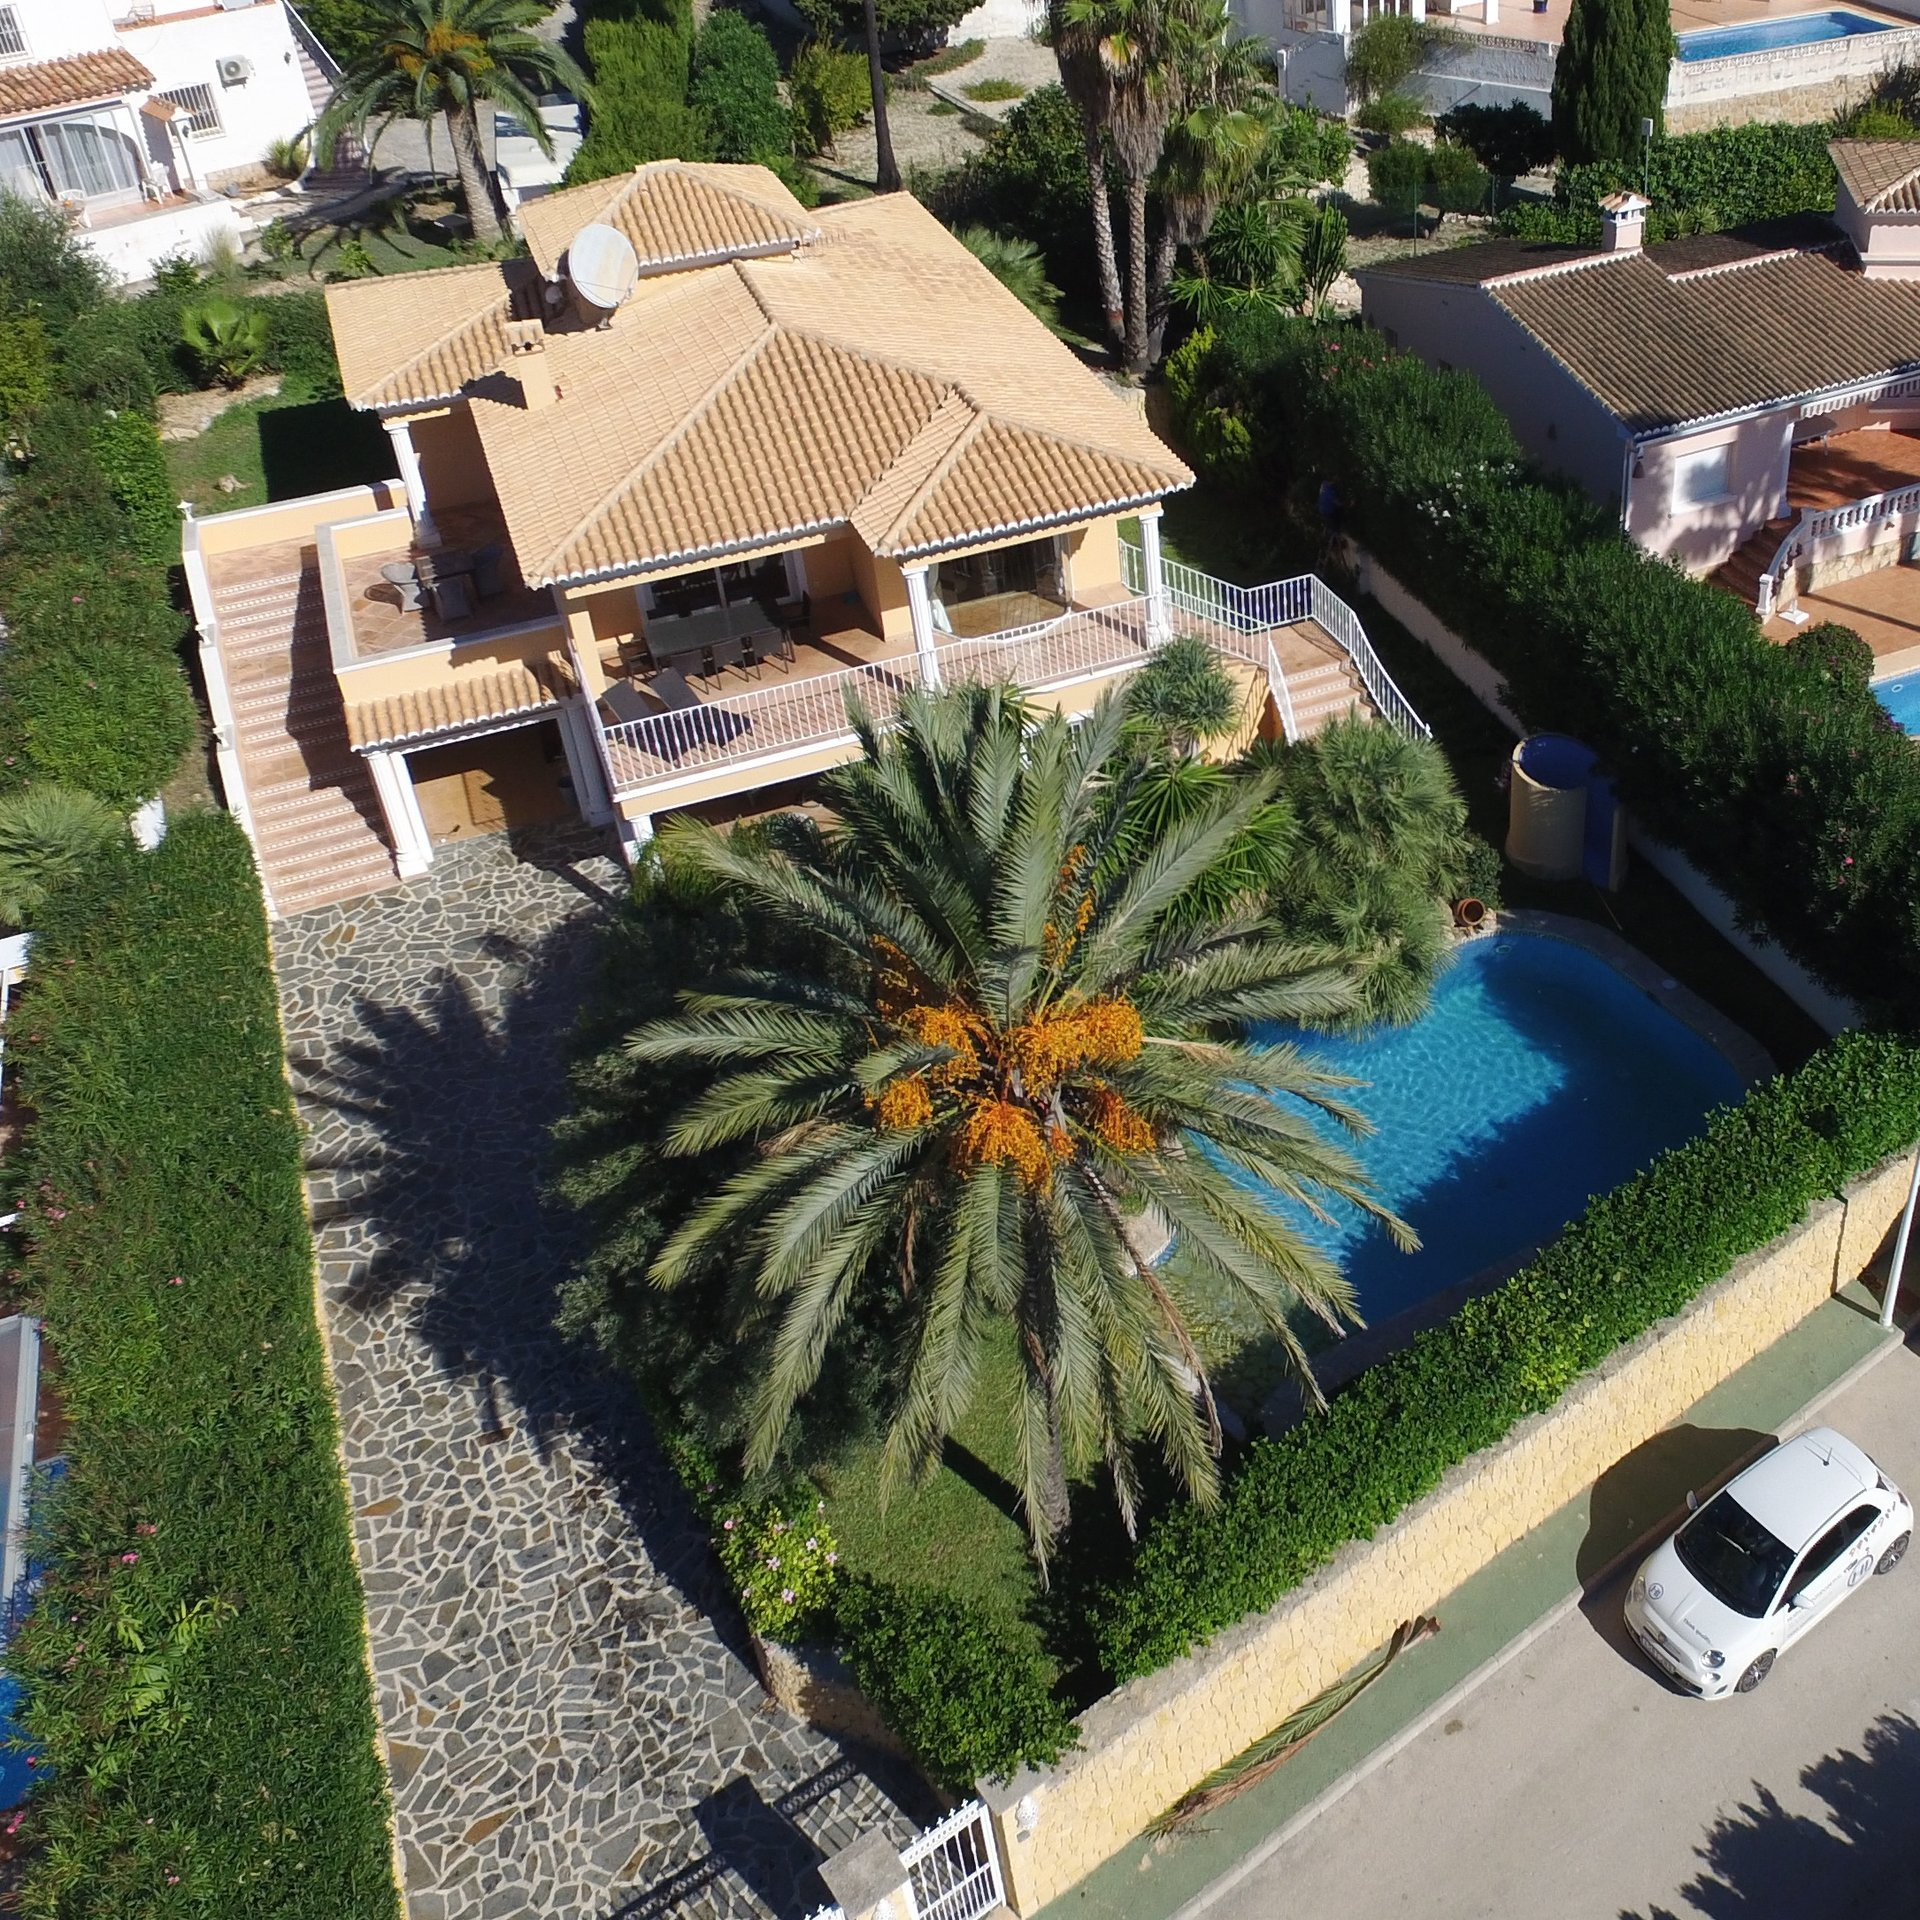 Luxurious villa, fully equipped and laid out on two levels